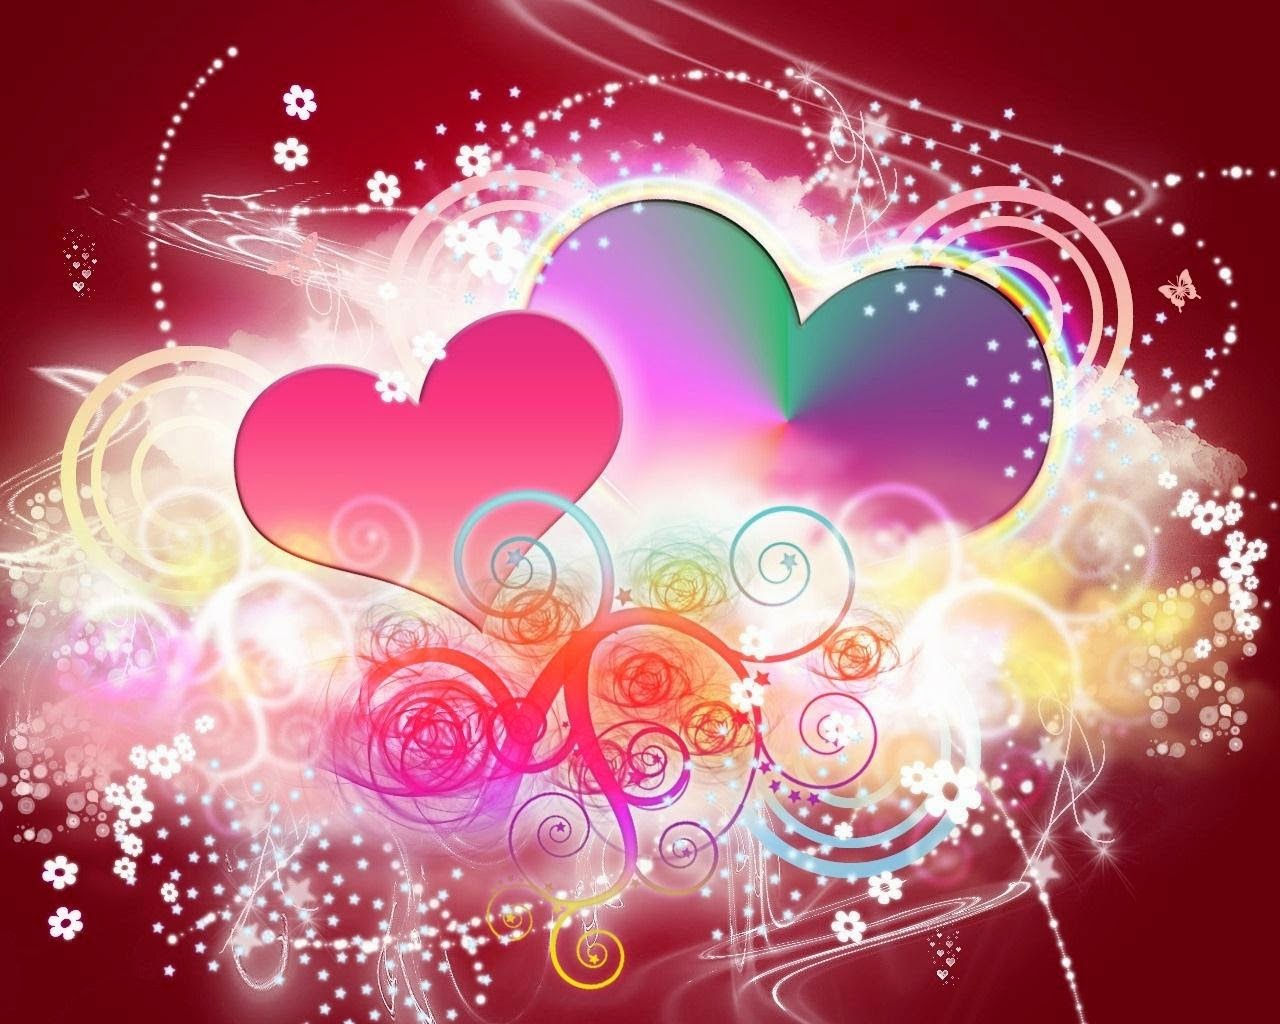 Valentine 39 s day images sms greetings 2015 desktop wallpapers happy valentines day wallpapers 2015 - Background for valentine pictures ...